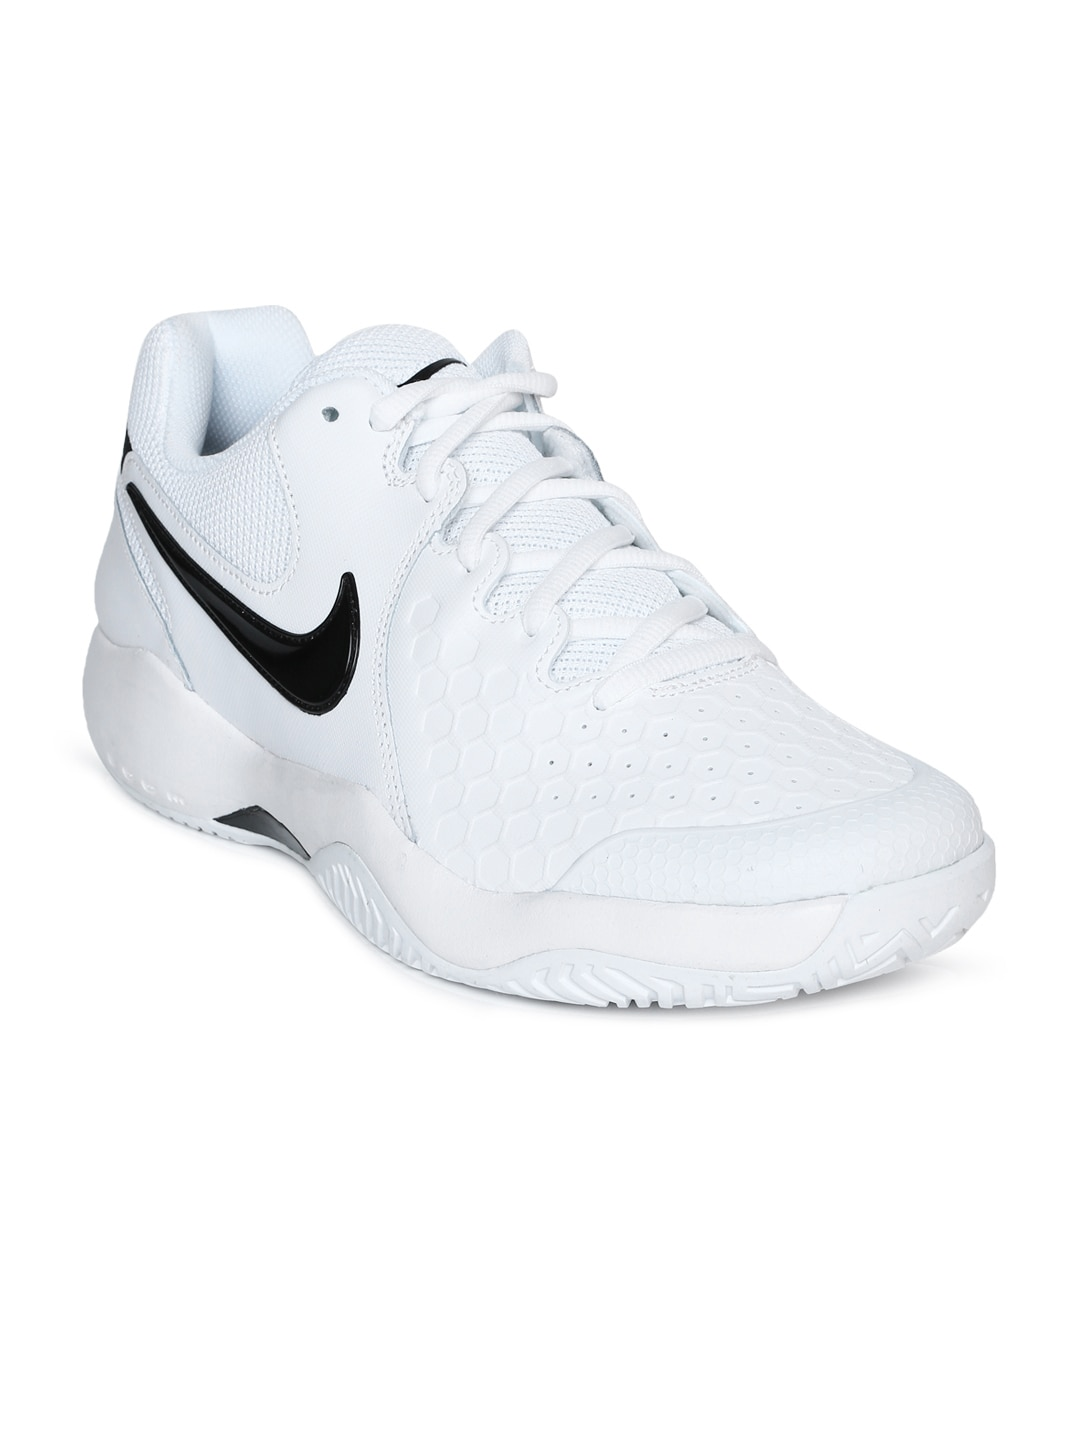 Nike Blazer Shoes - Buy Nike Blazer Shoes online in India fb3b8e3473b45